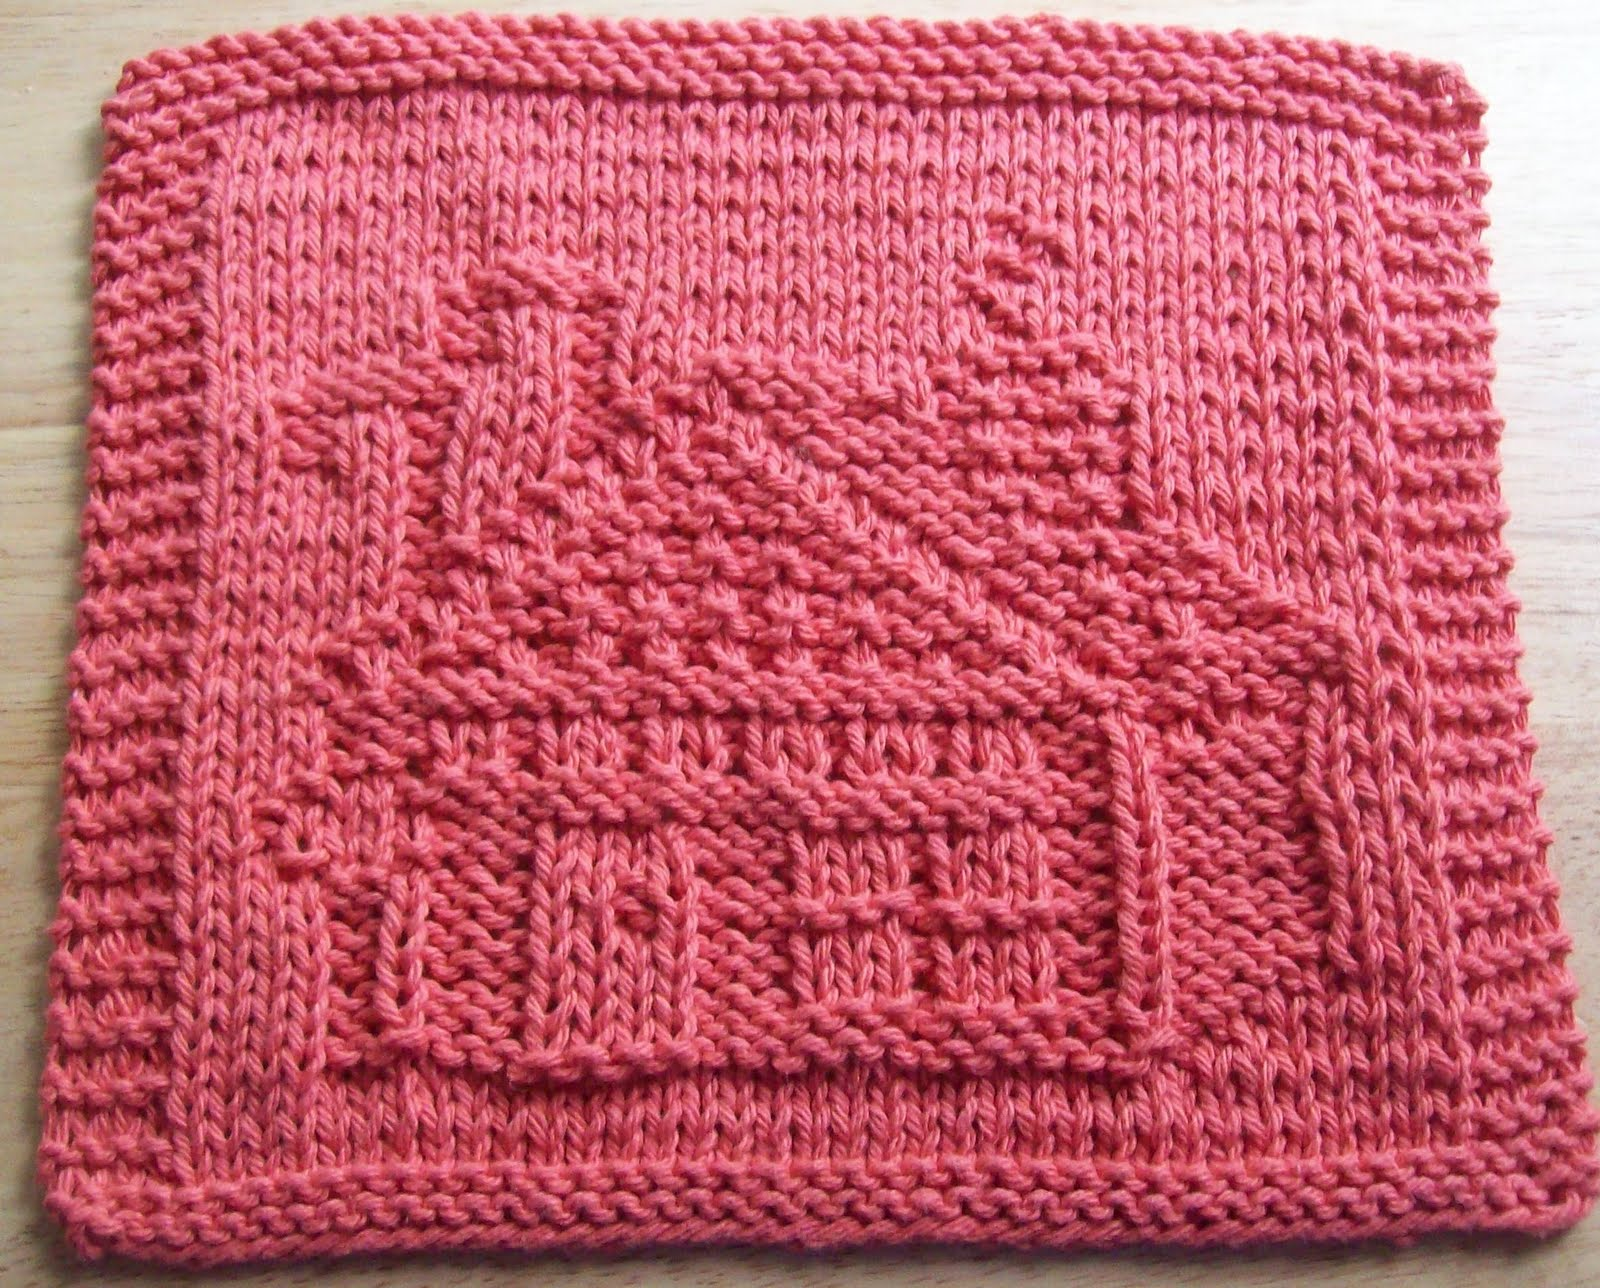 Knitted Dishcloth Patterns : DigKnitty Designs: Gingerbread House Too Knit Dishcloth Pattern